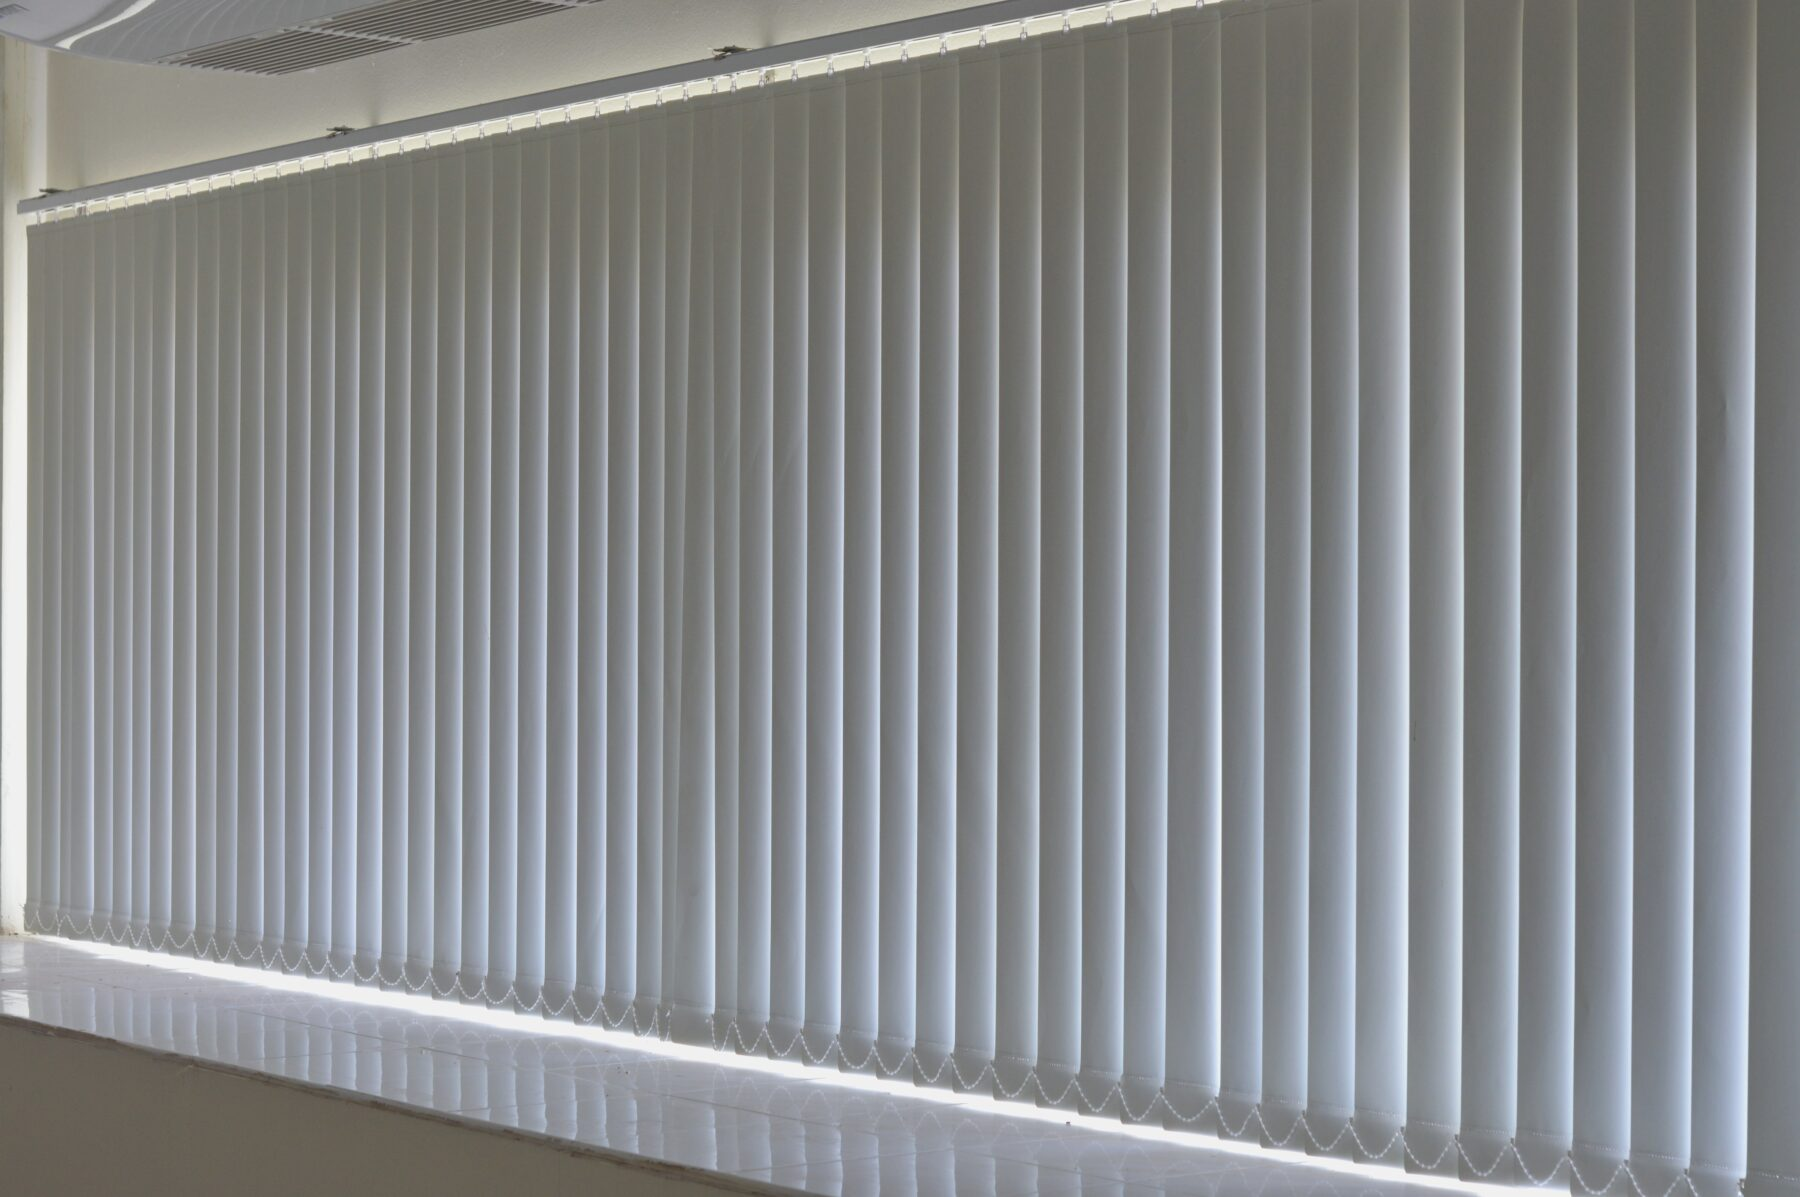 White vertical blinds closed over a wide window, with some light visible at the edges.